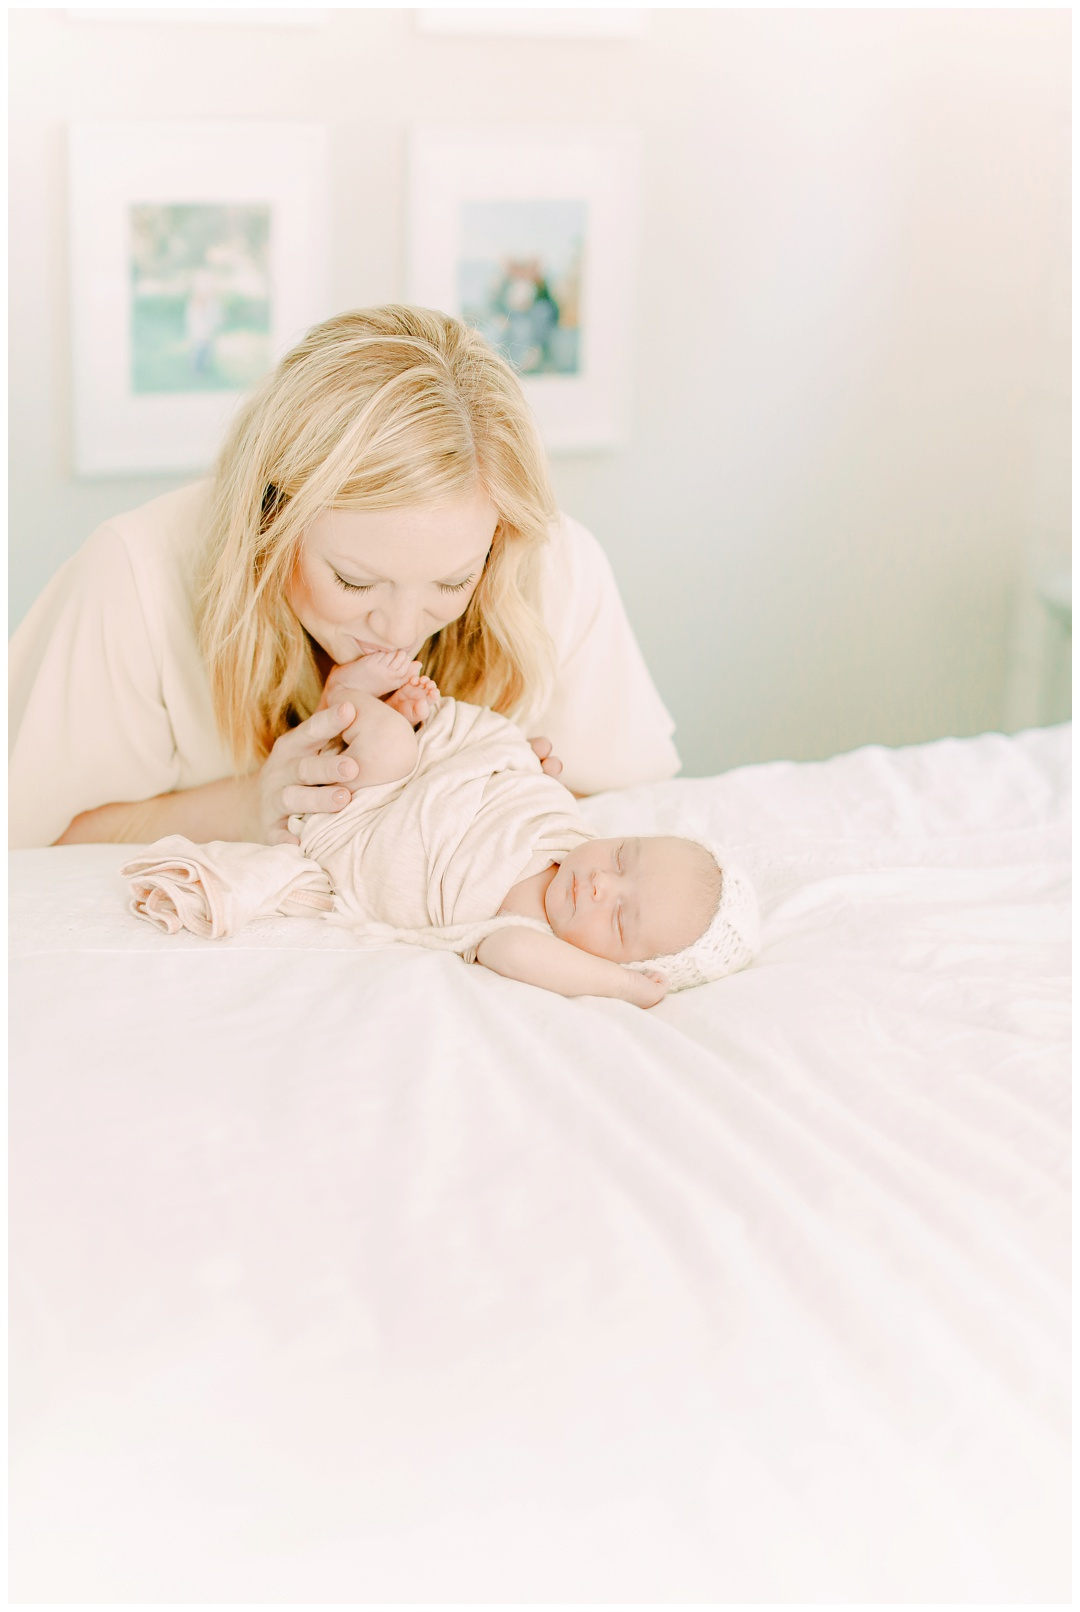 The_Fennesy_Family_Newport_Beach_Lifestyle_Family_Photographer_Orange_County_Family_Photography_Cori_Kleckner_Photography_Orange_County_Newborn_Photographer_Family_Photos_Session__1387.jpg